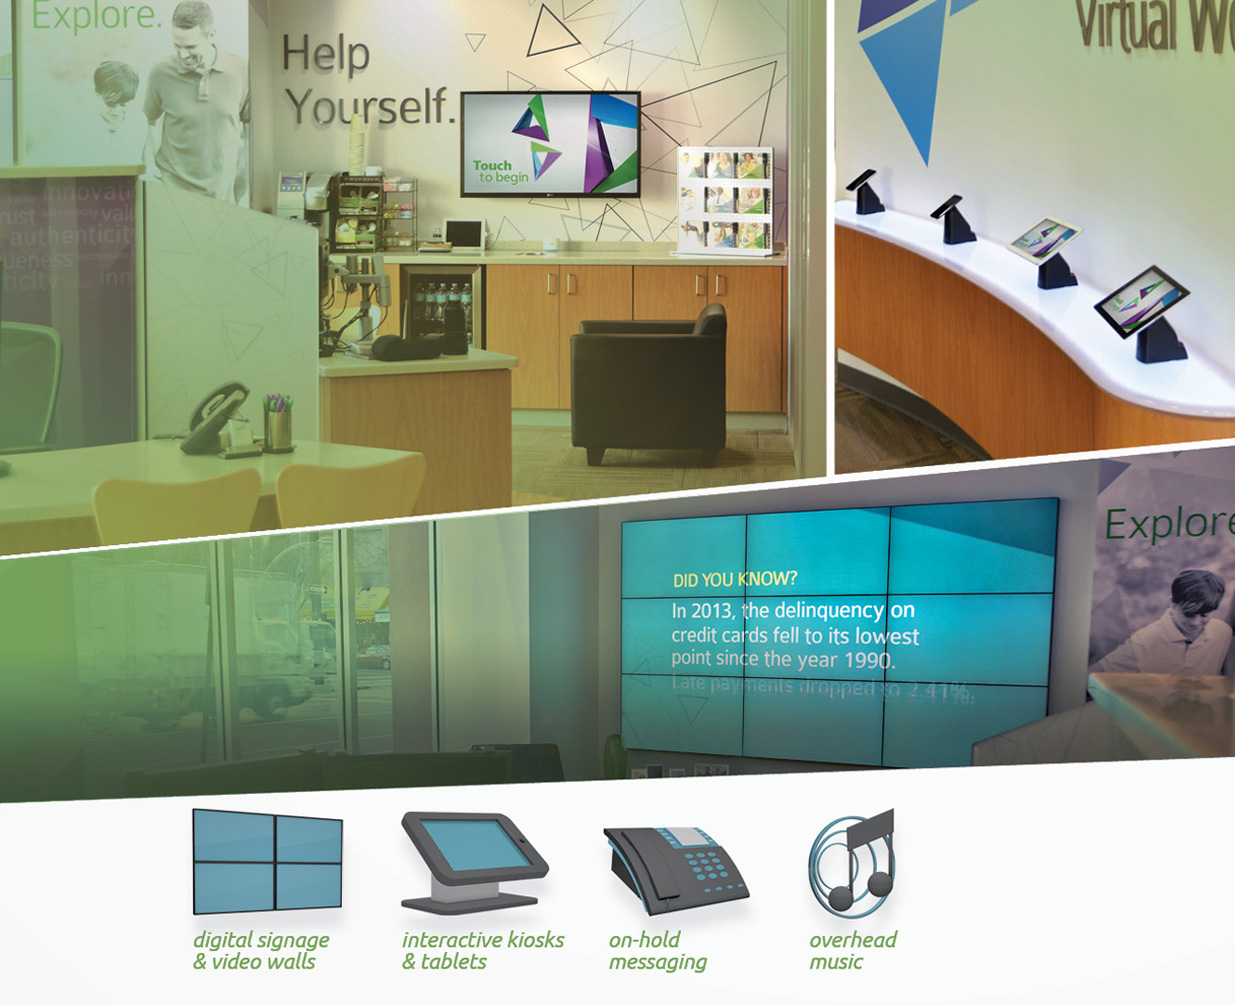 Digital Signage total cost of ownerhsip